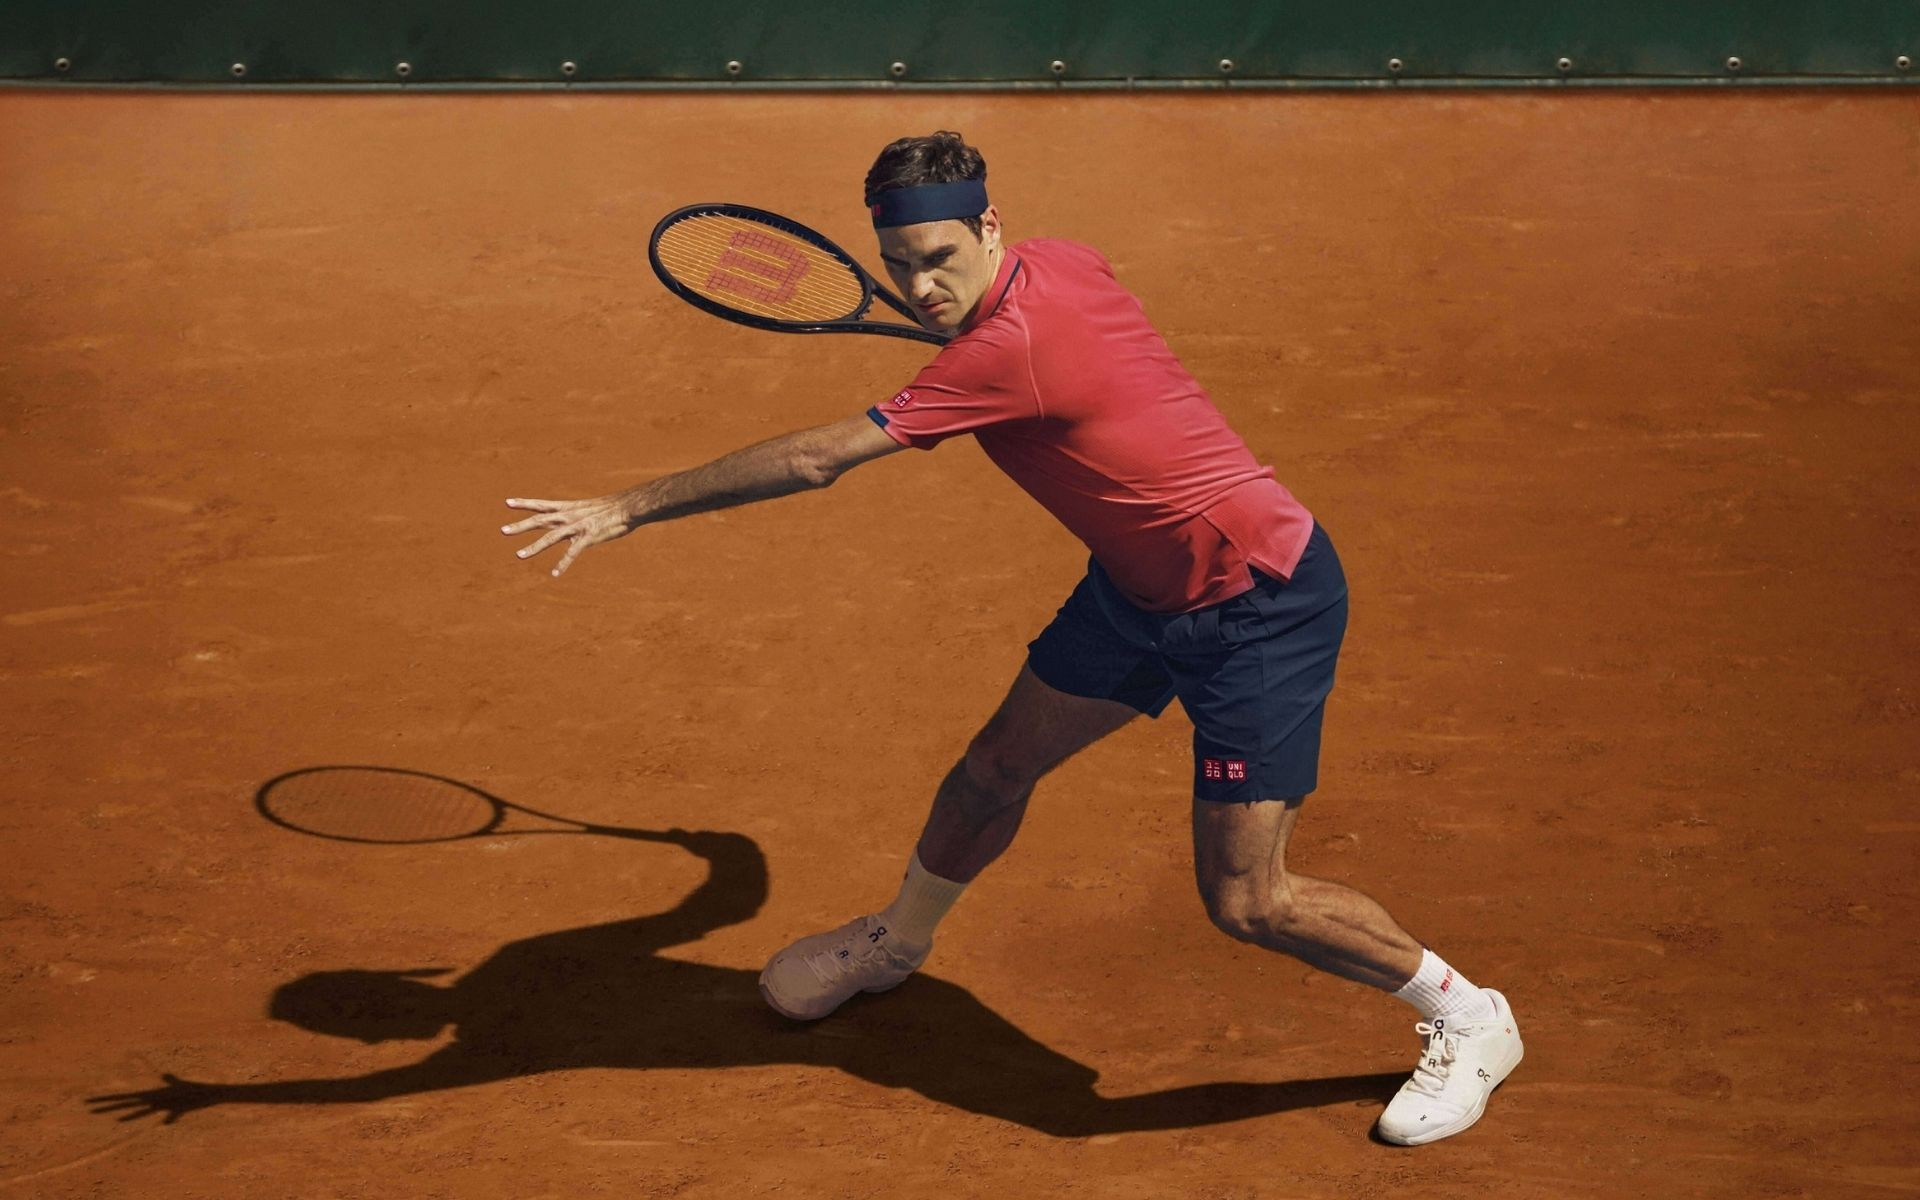 Roger Federer and his new Uniqlo game wear line in motion